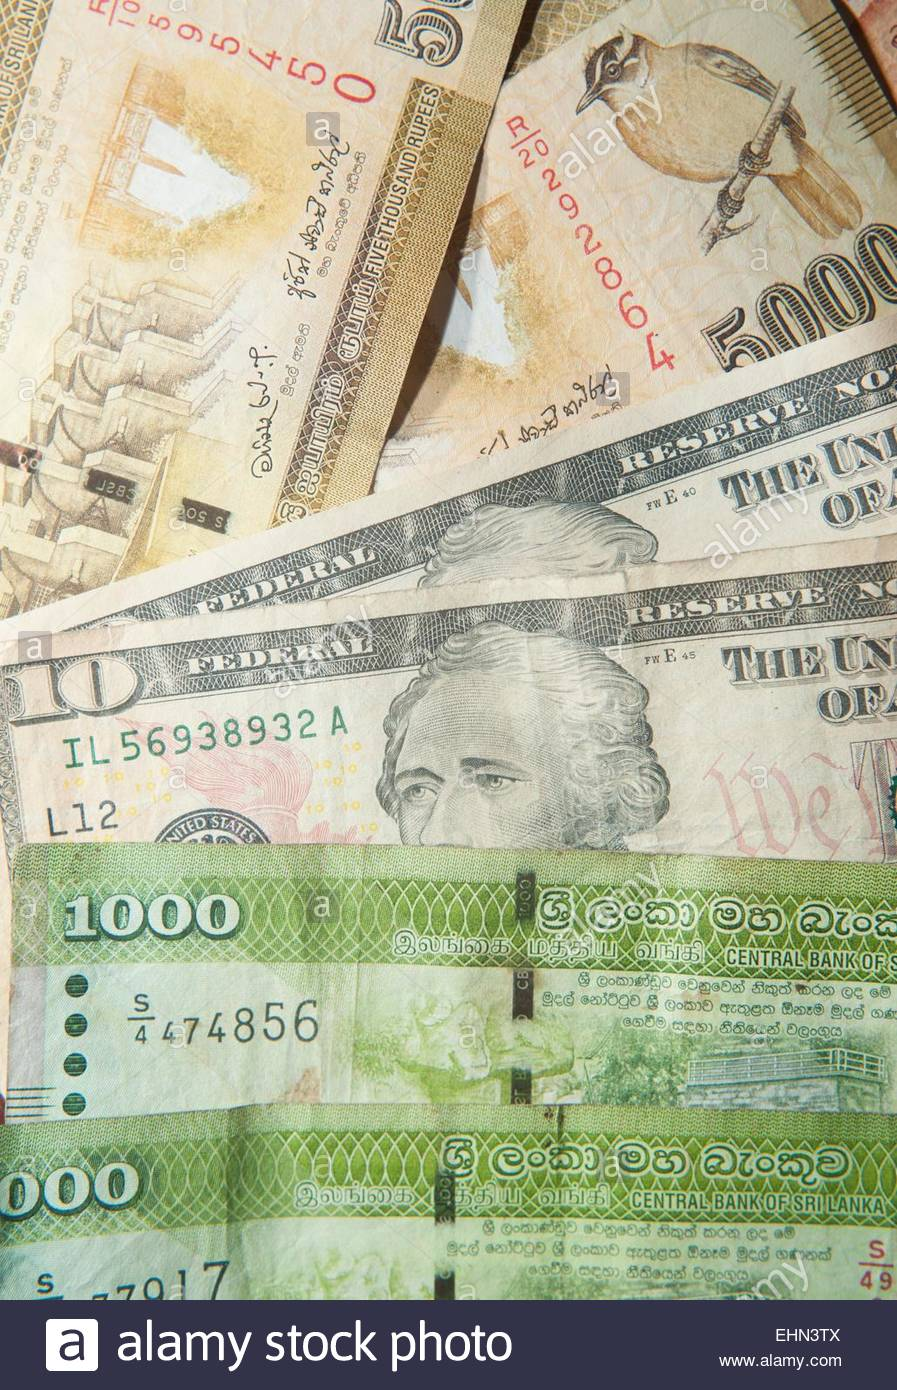 Sri Lankan rupee and US dollars - Stock Image